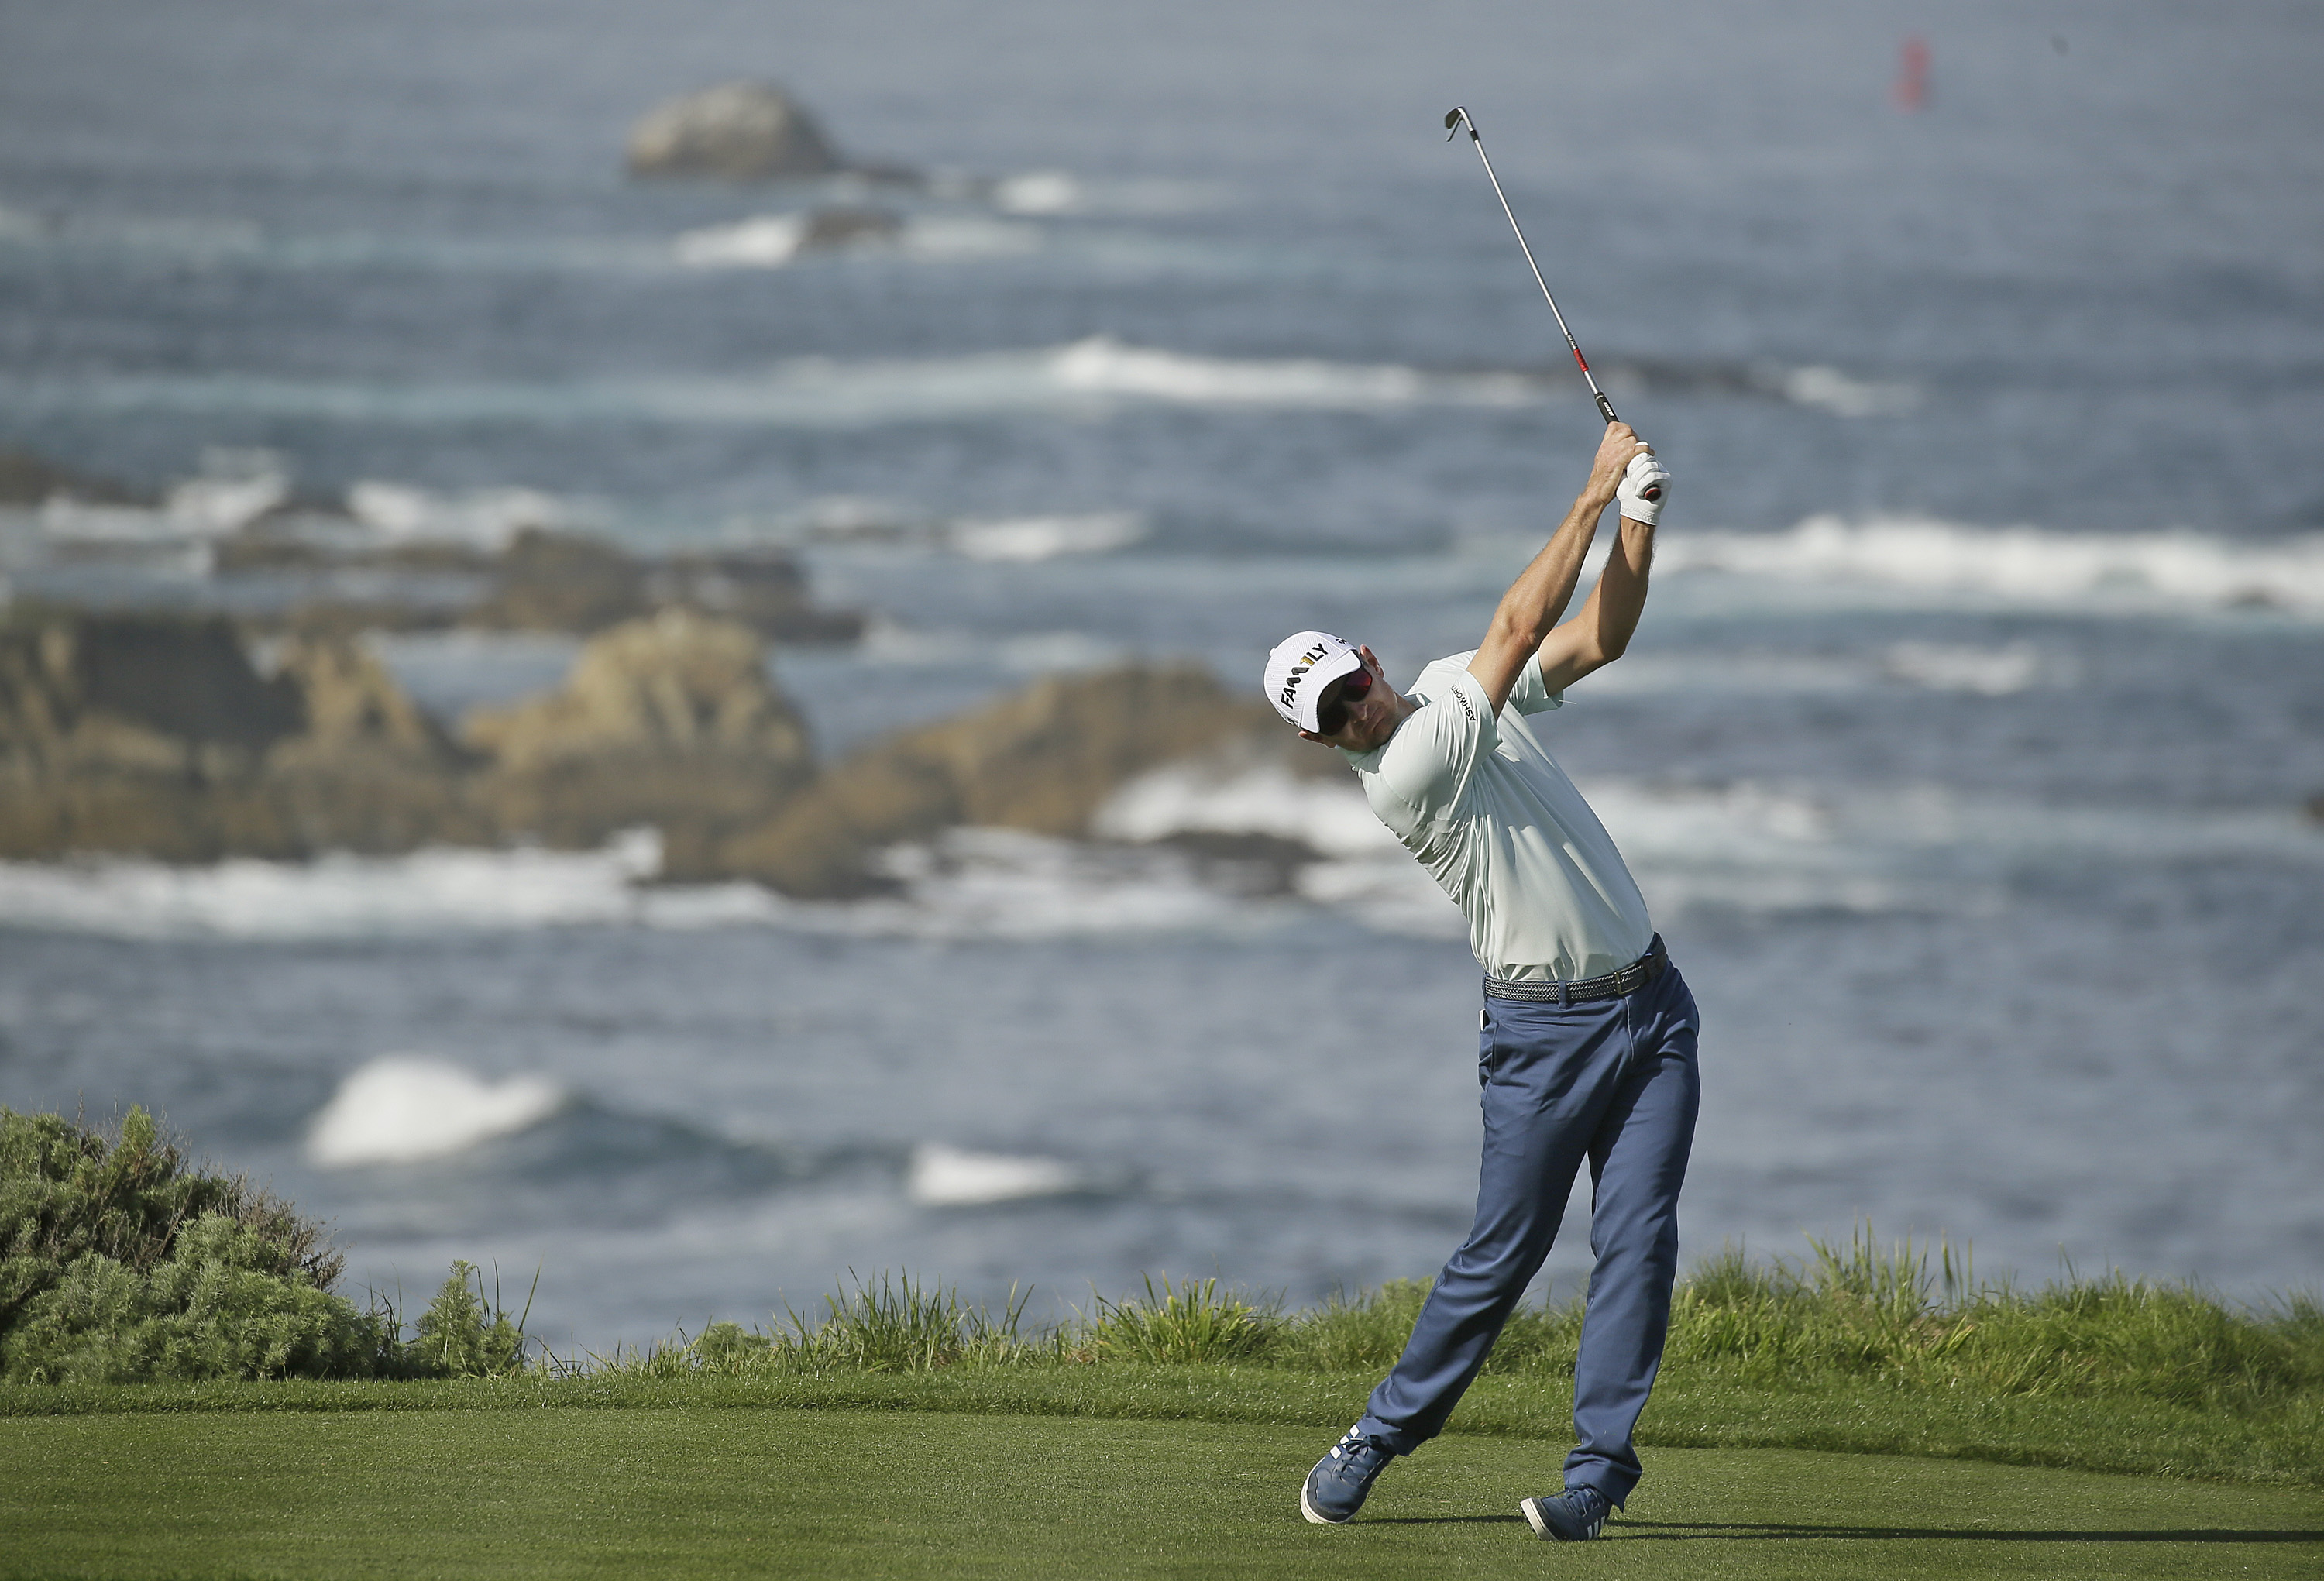 Justin Rose follows his shot from the fourth tee of the Spyglass Hill Golf Course during the first round of the AT&T Pebble Beach National Pro-Am golf tournament Thursday, Feb. 11, 2016, in Pebble Beach, Calif. (AP Photo/Eric